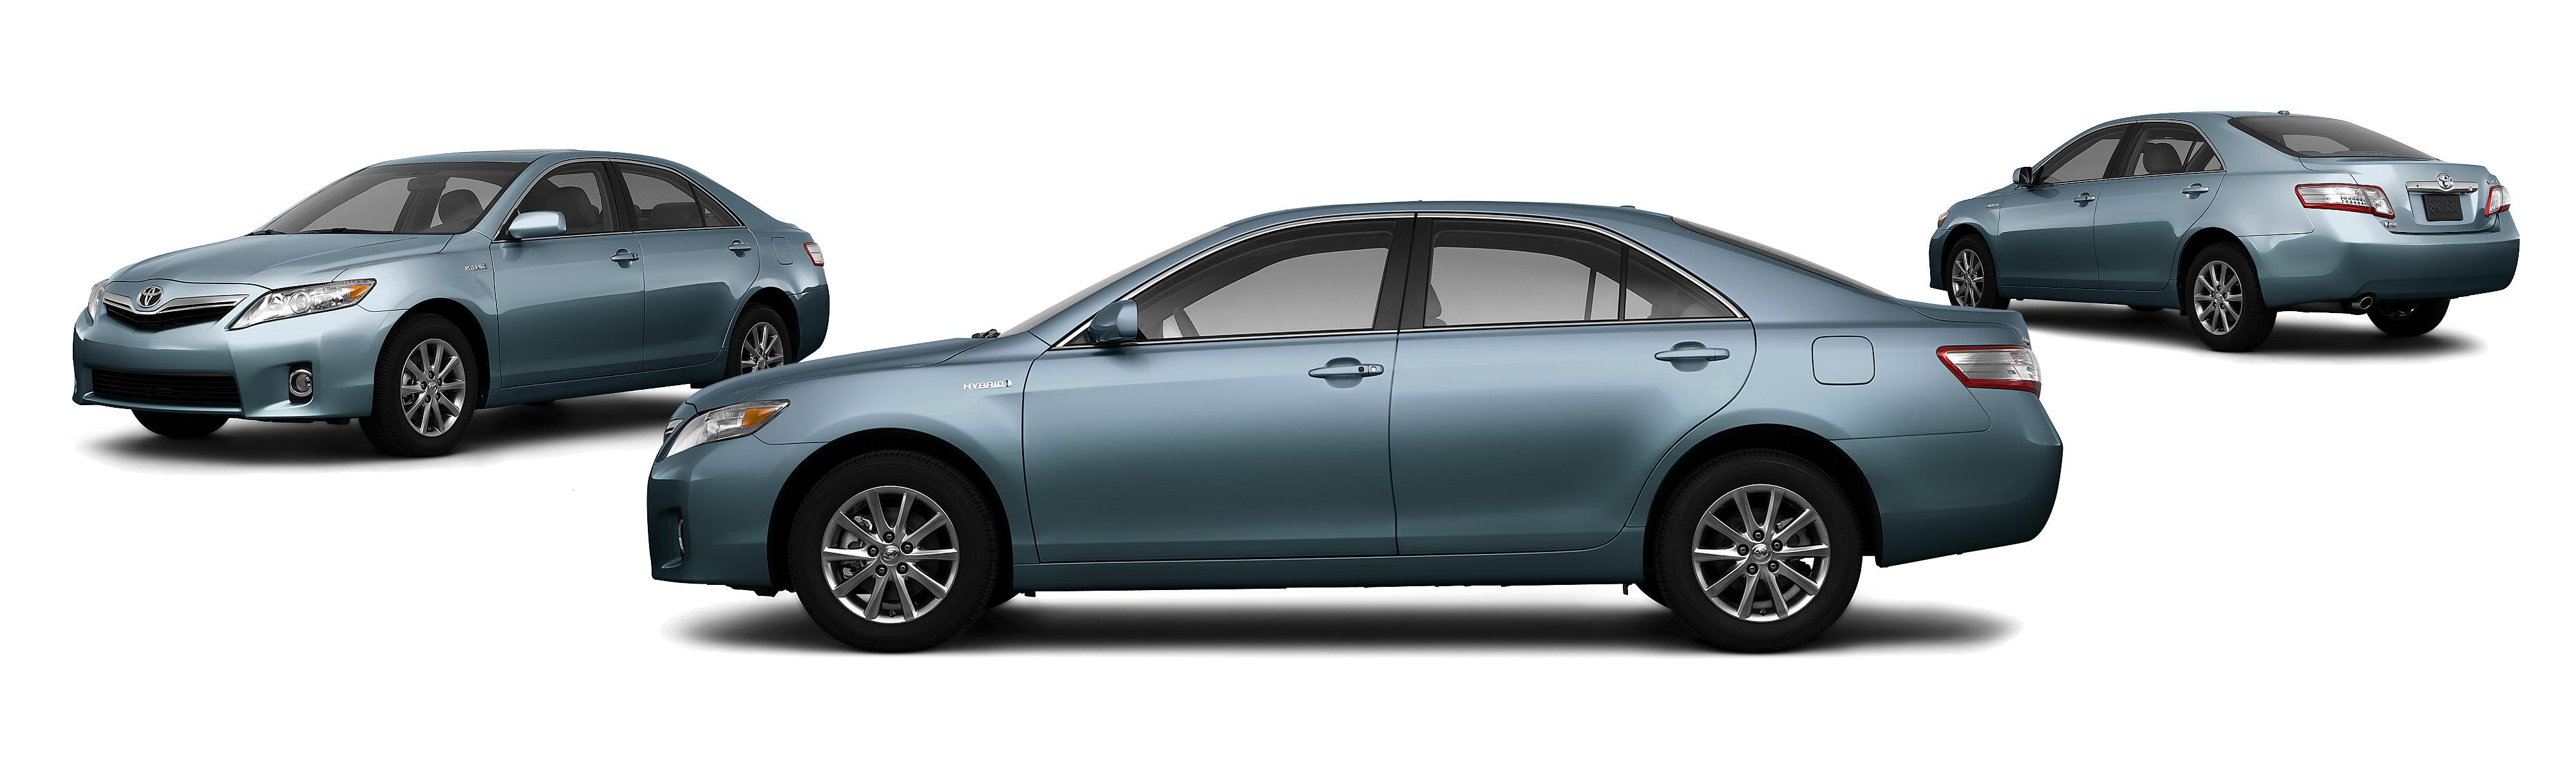 2011 Toyota Camry Hybrid Base 4dr Sedan Research GrooveCar